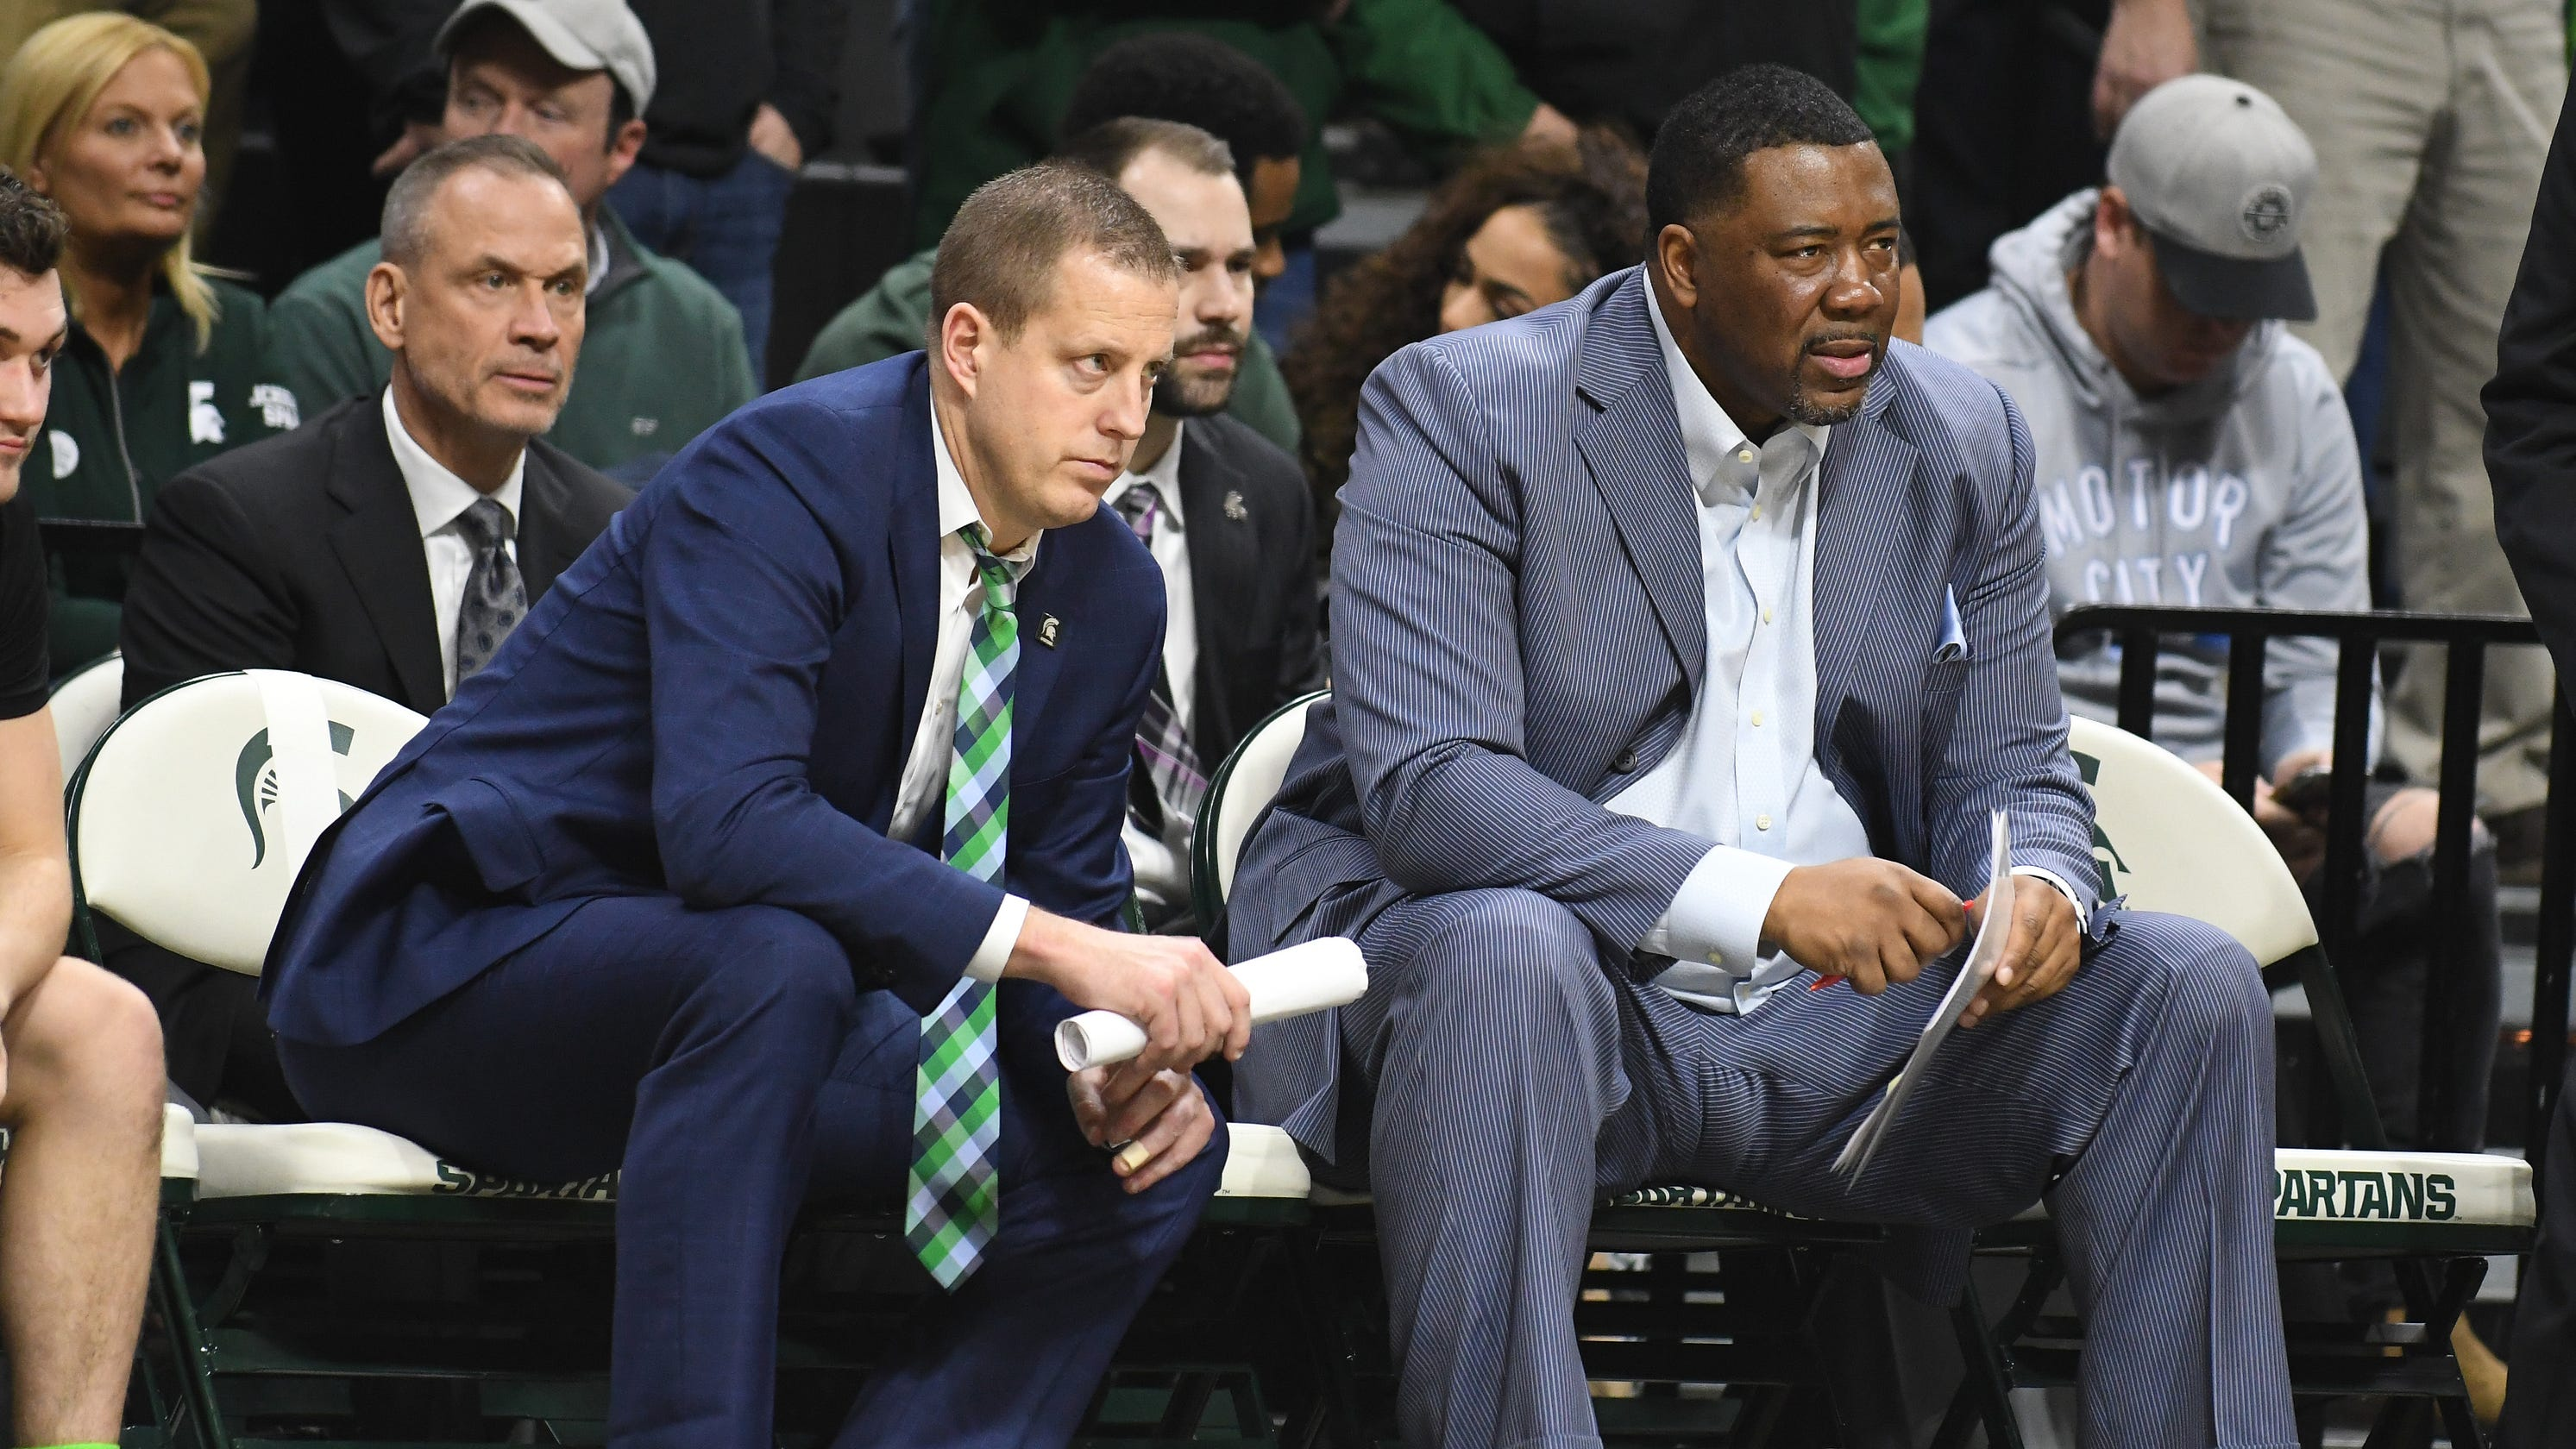 Father of Michigan State assistant coach Dwayne Stephens dies from COVID-19